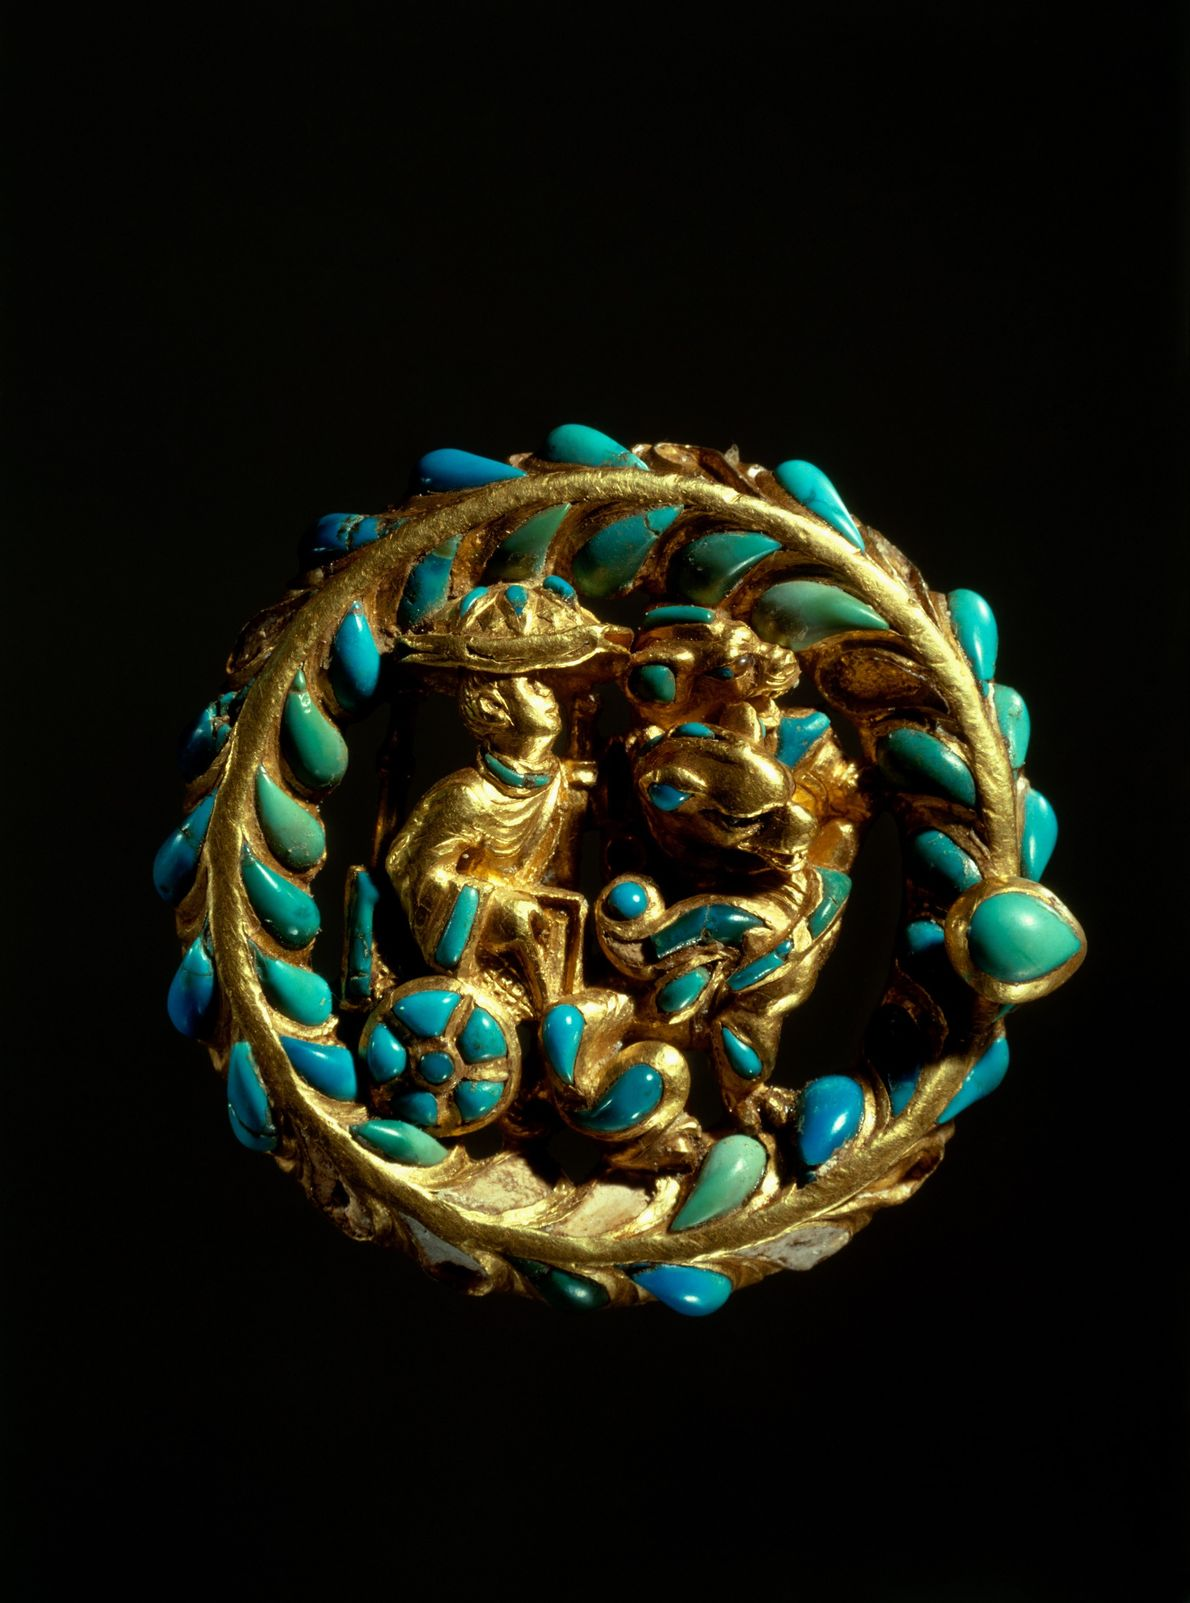 This turquoise-studded buckle bears images from the East, charioteers driving Chinese-style canopied chariots. But the winged ...